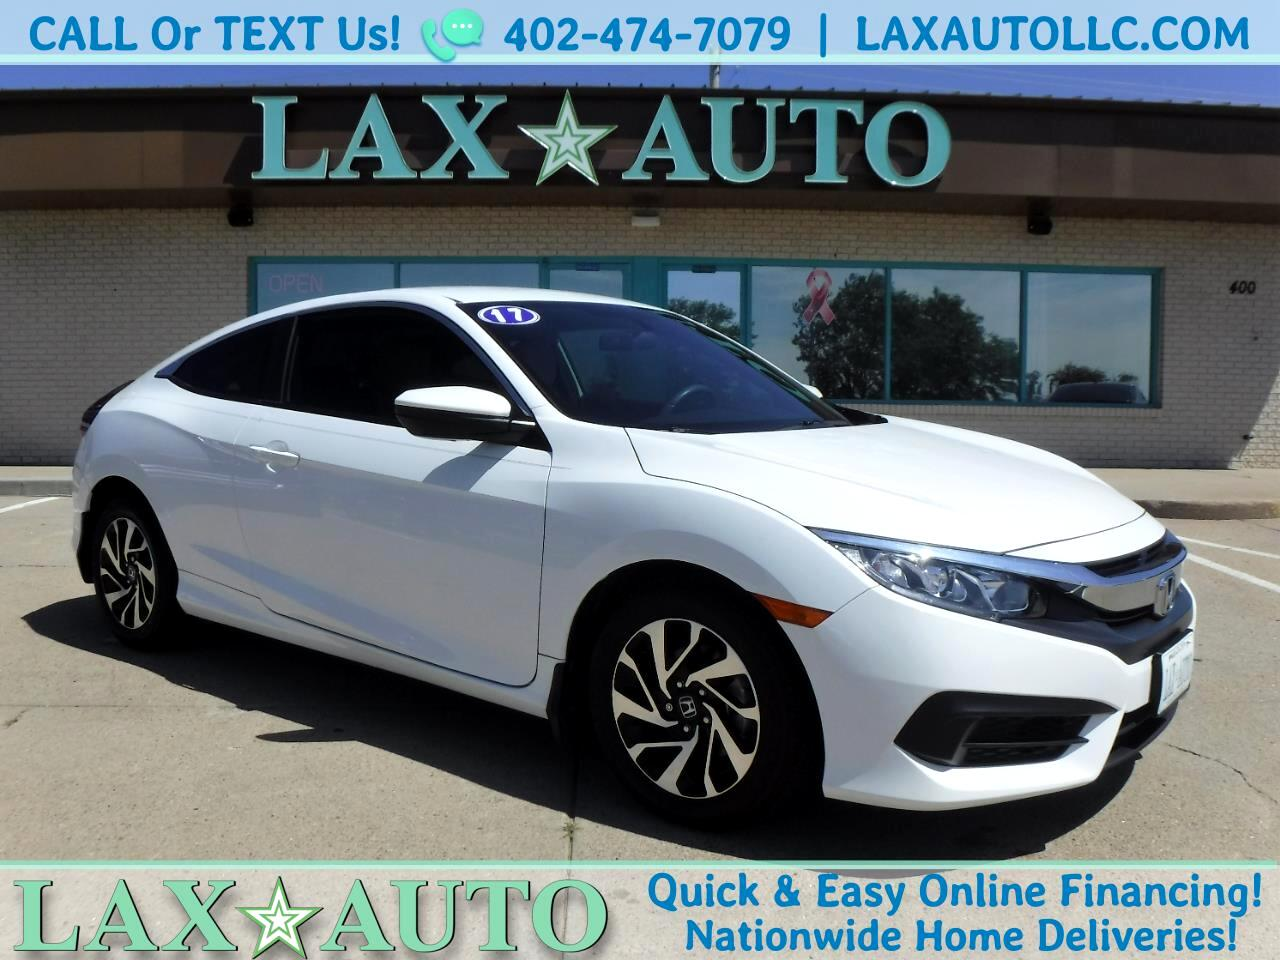 2017 Honda Civic LX Sport Coupe w/ Only 19k Miles!